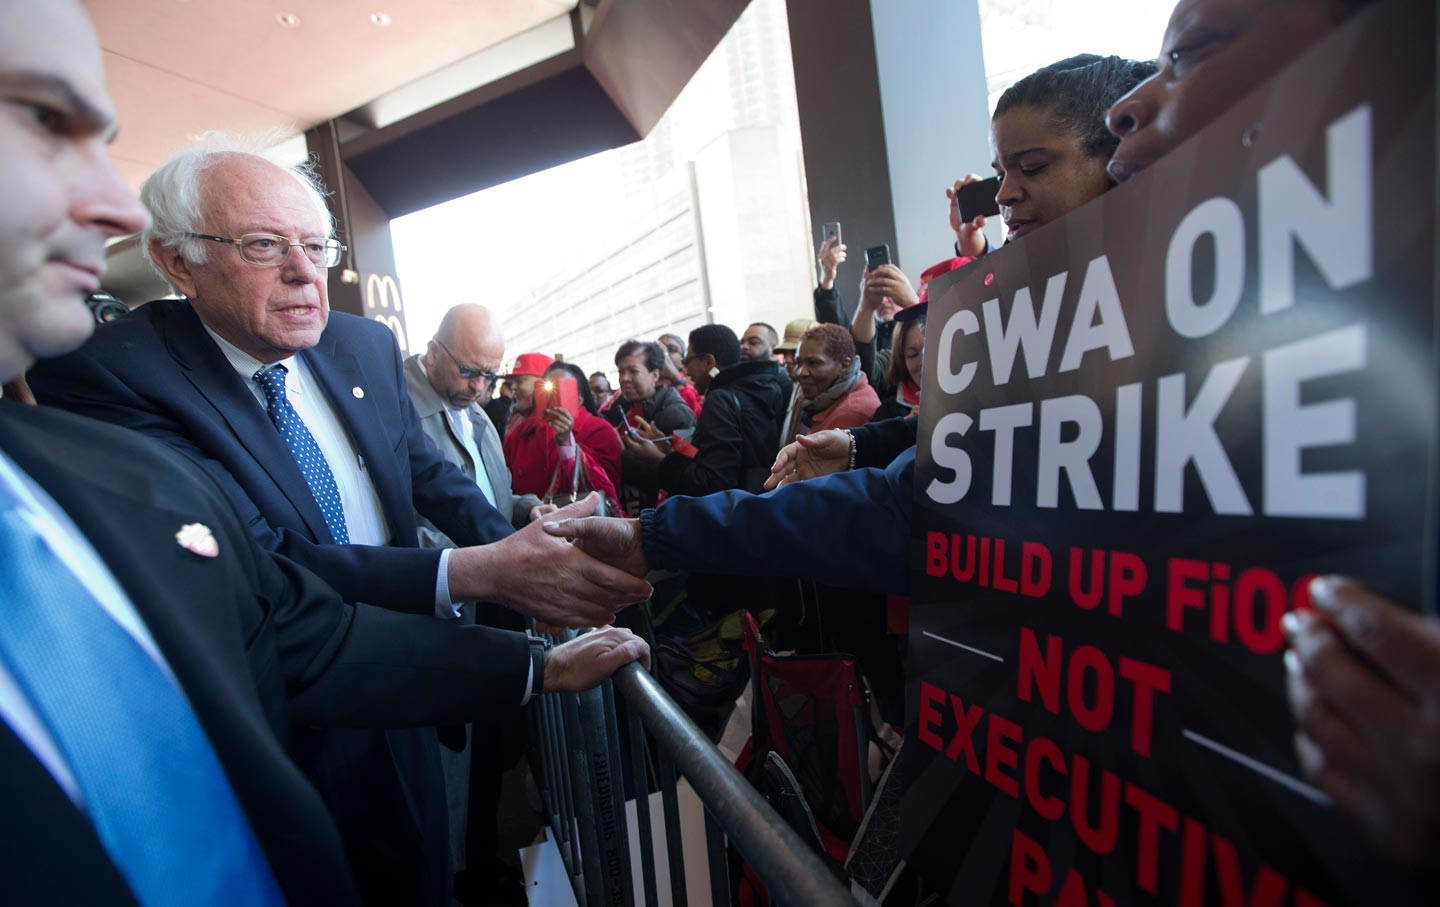 Sanders with CWA workers in Brooklyn